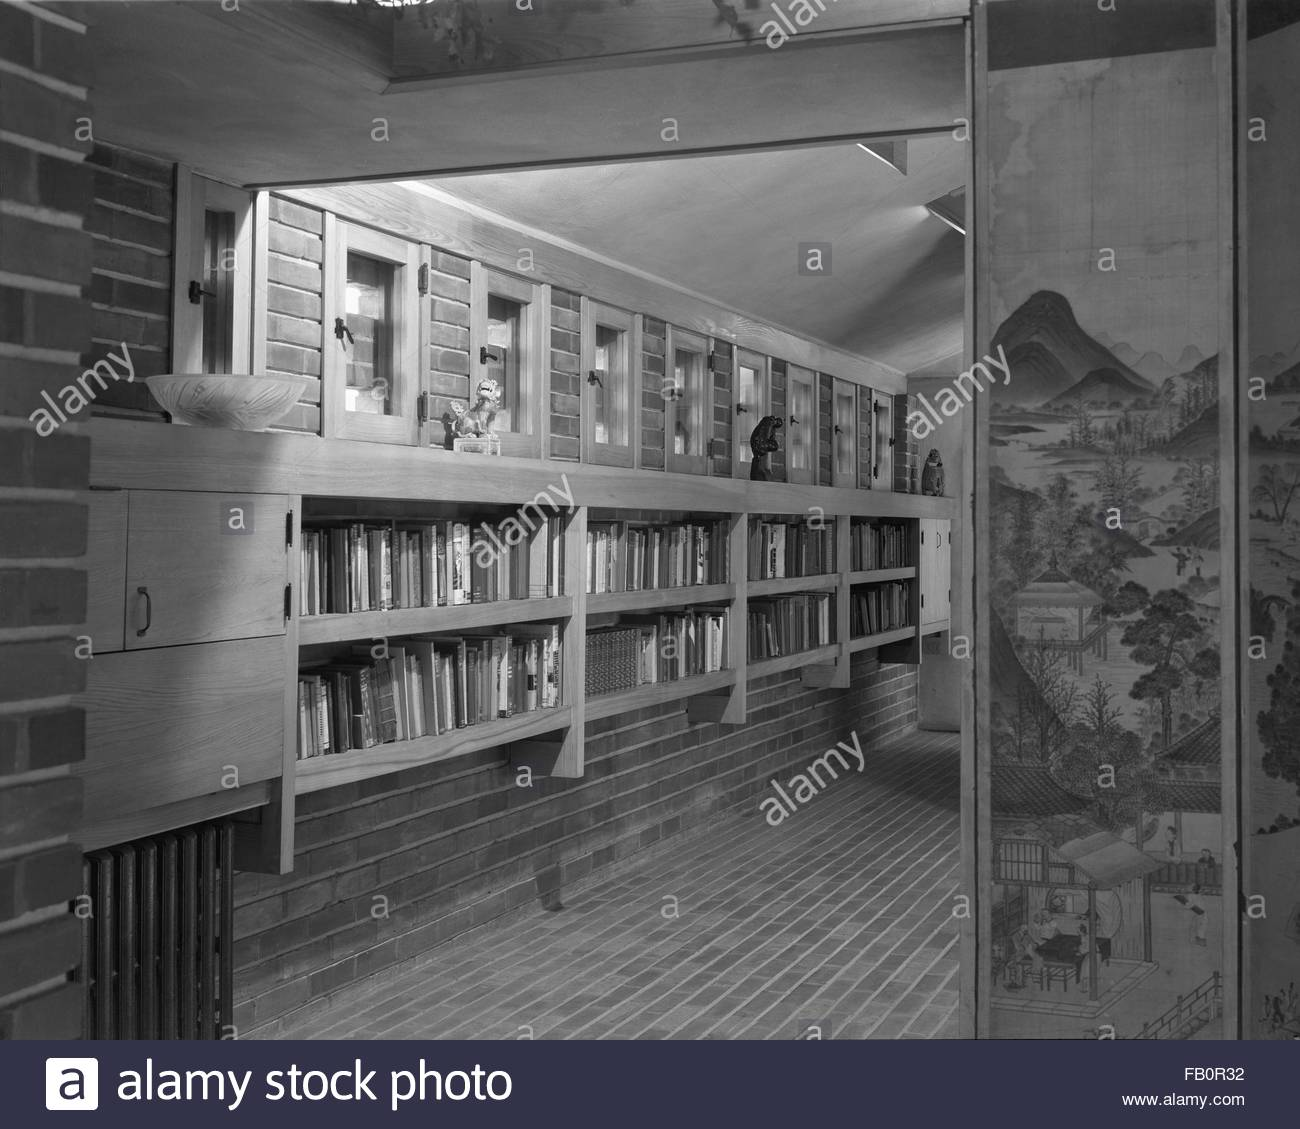 Malcom E. Willey residence in Minneapolis (Minn.), 1937 Dec. A book-lined corridor with a Japanese screen - Stock Image